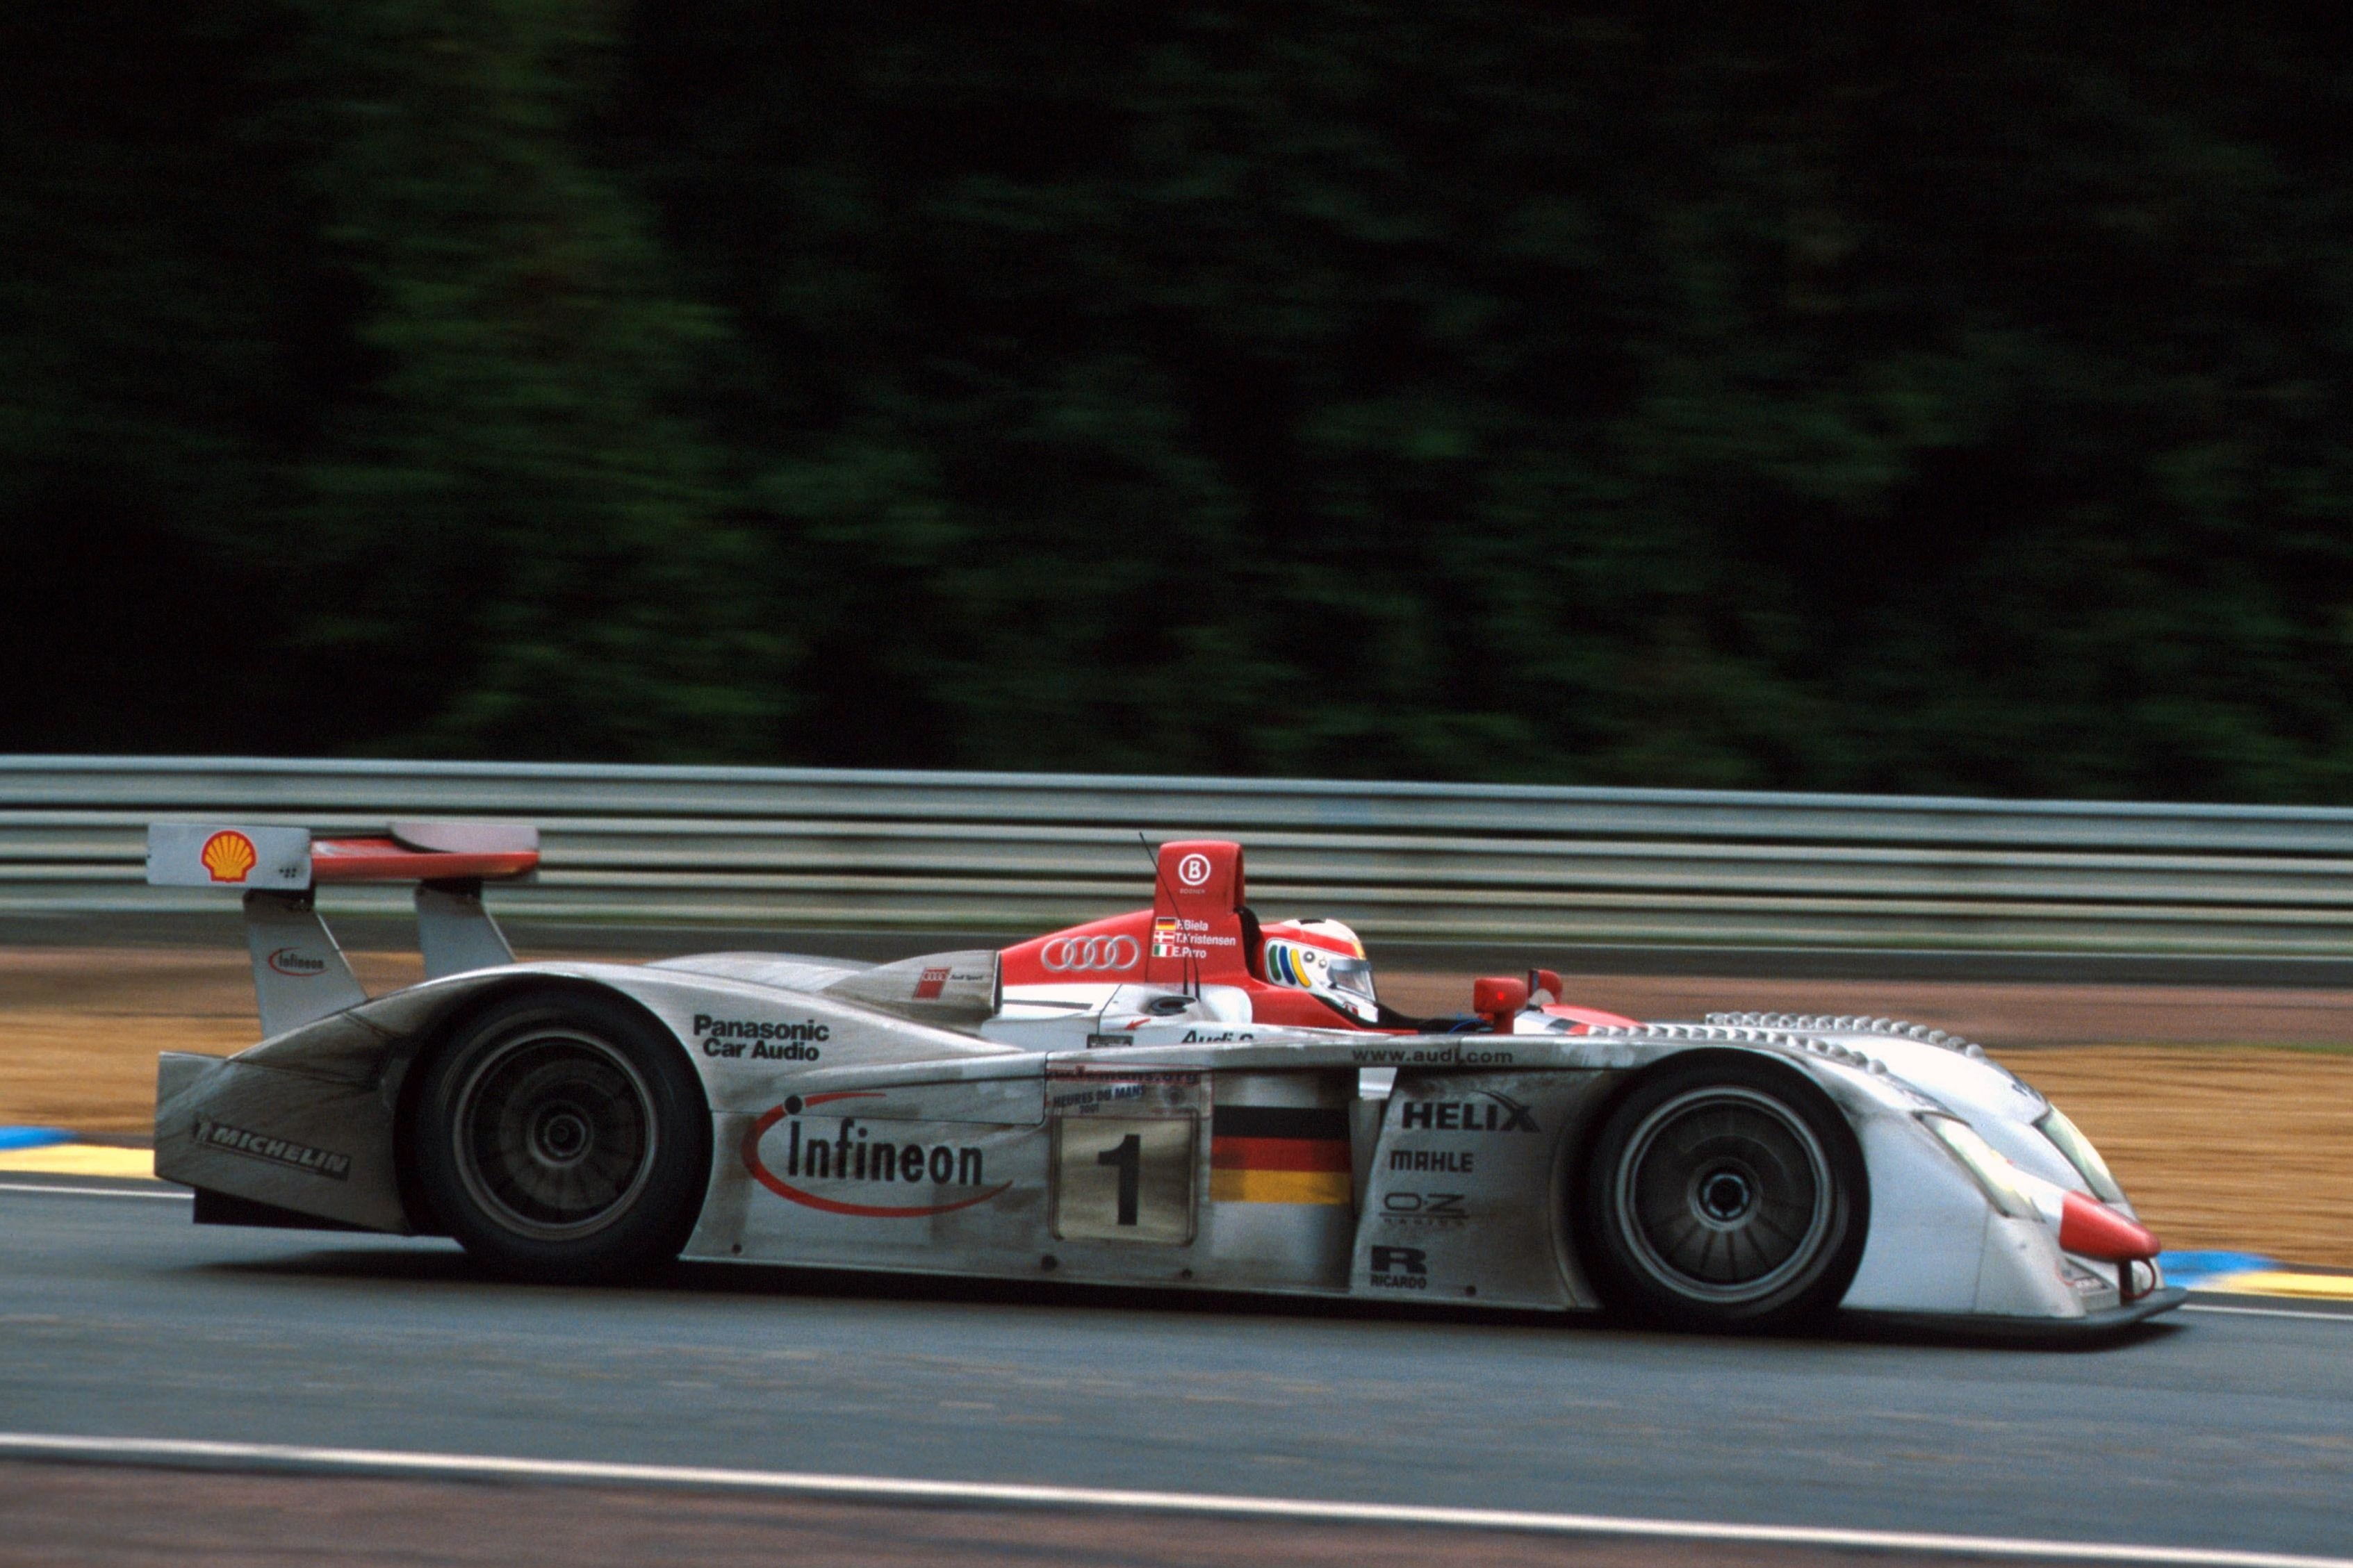 Heavy rain couldn't halt the Audi juggernaut in 2001 as Kristensen, Biela and Pirro claimed their second win on the trot